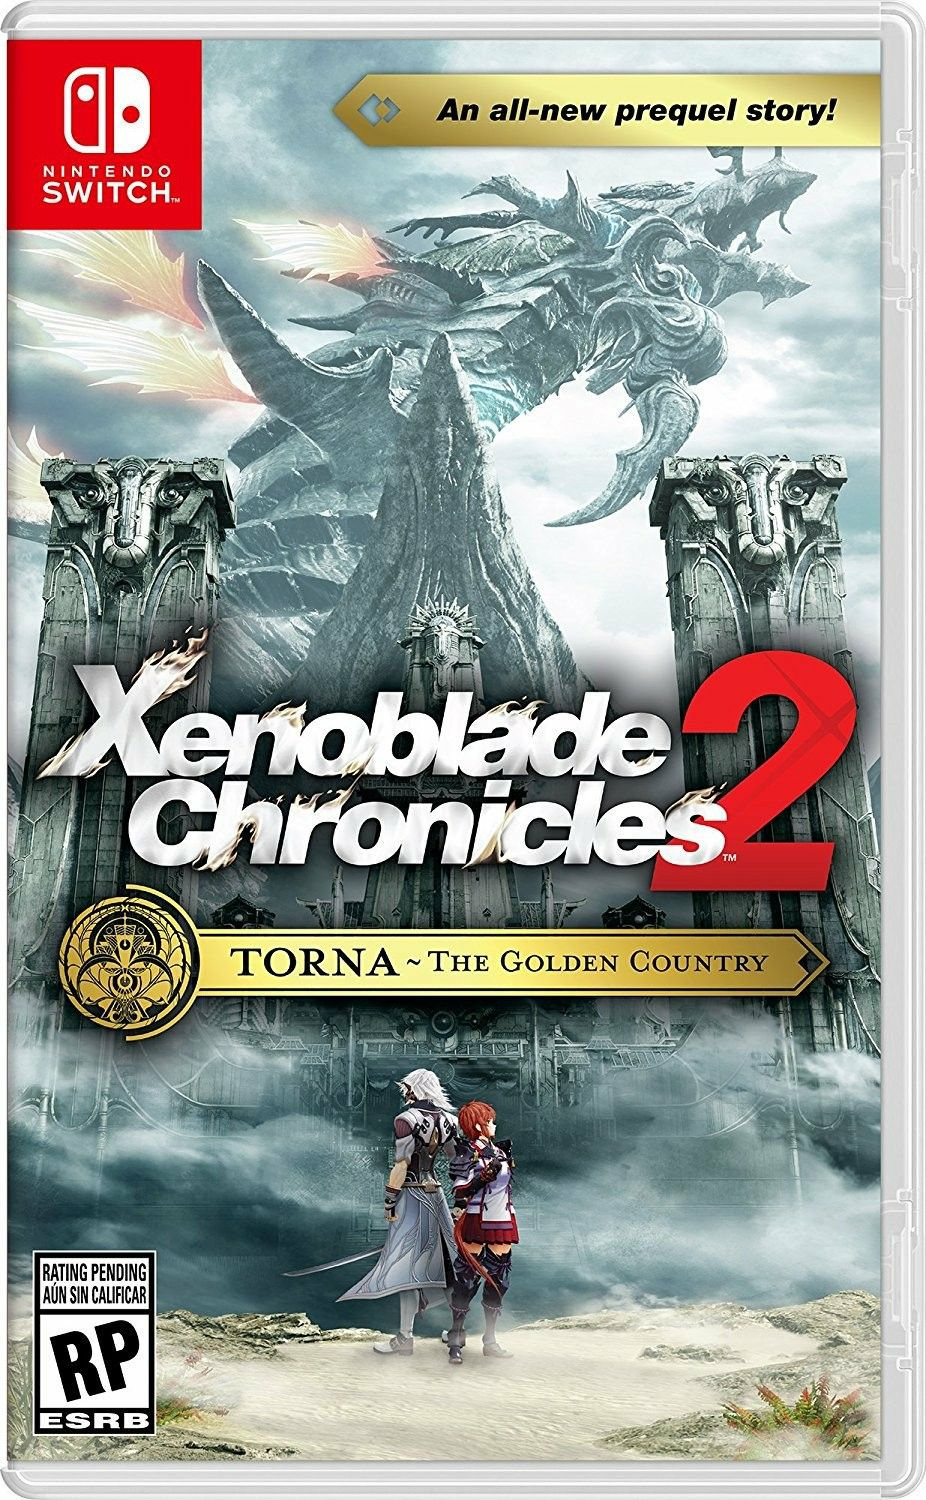 Pin by Tim Hayes on Games in 2020 Xenoblade chronicles